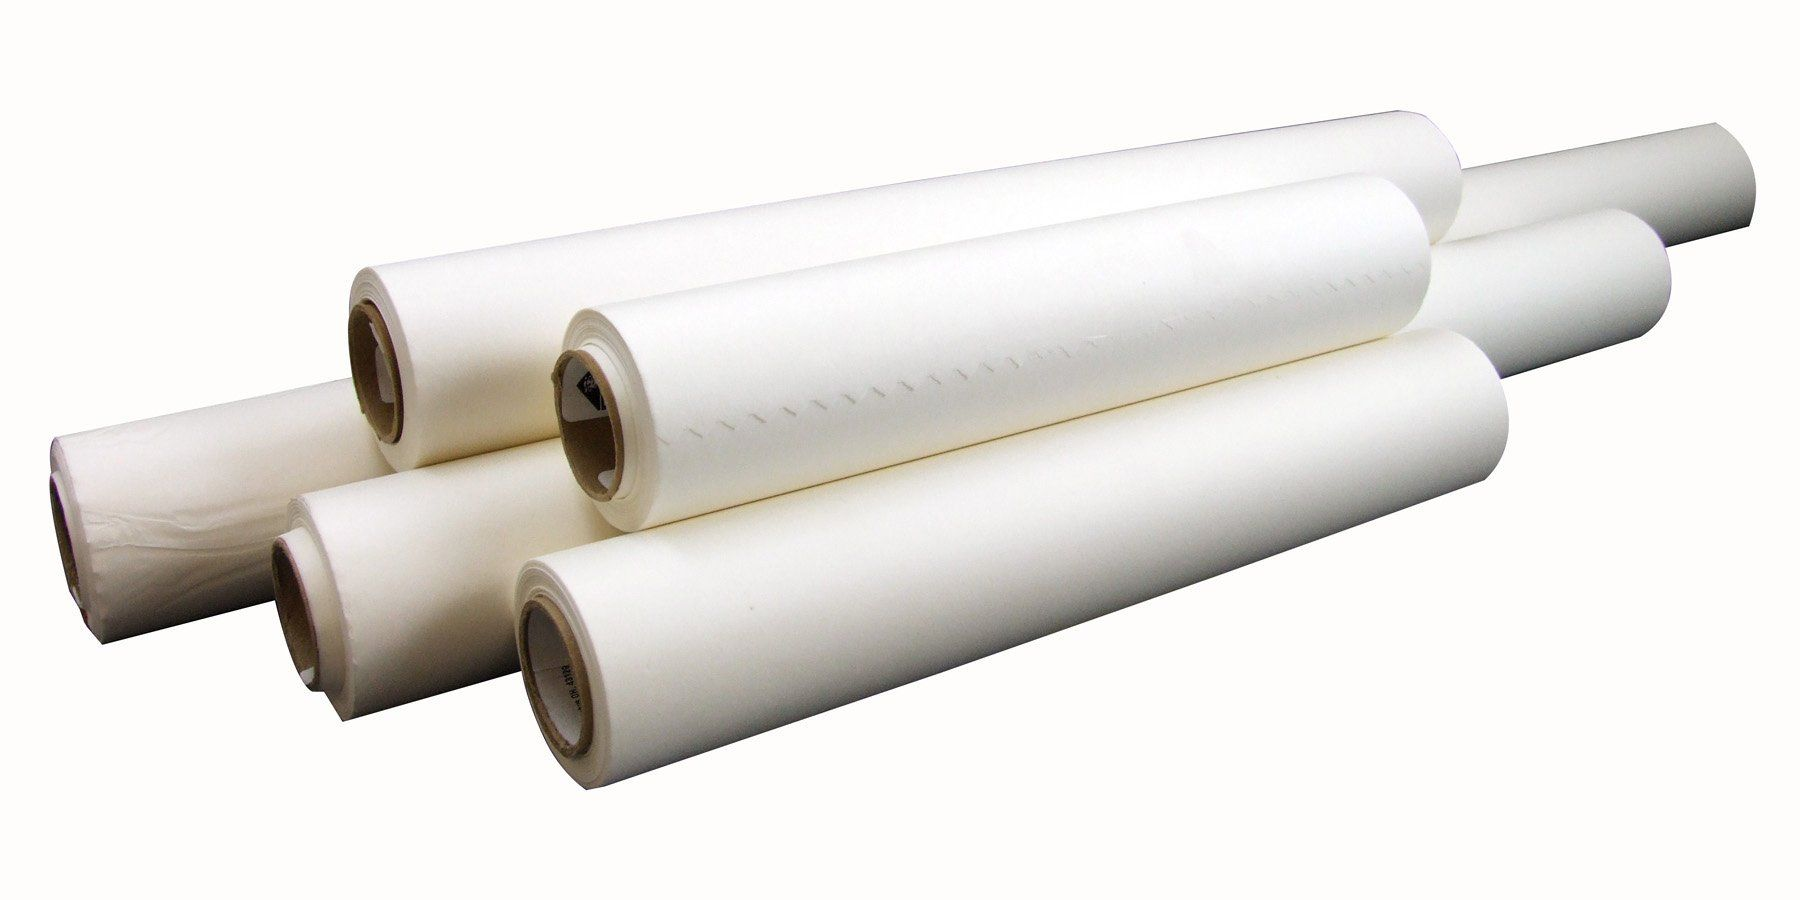 Bienfang 20 Yard By 12 Inch Wide Sketching And Tracing Paper Roll Ad Inch Ad Yard Bienfang Pap Tracing Paper Rolled Paper Art Paper Crafts